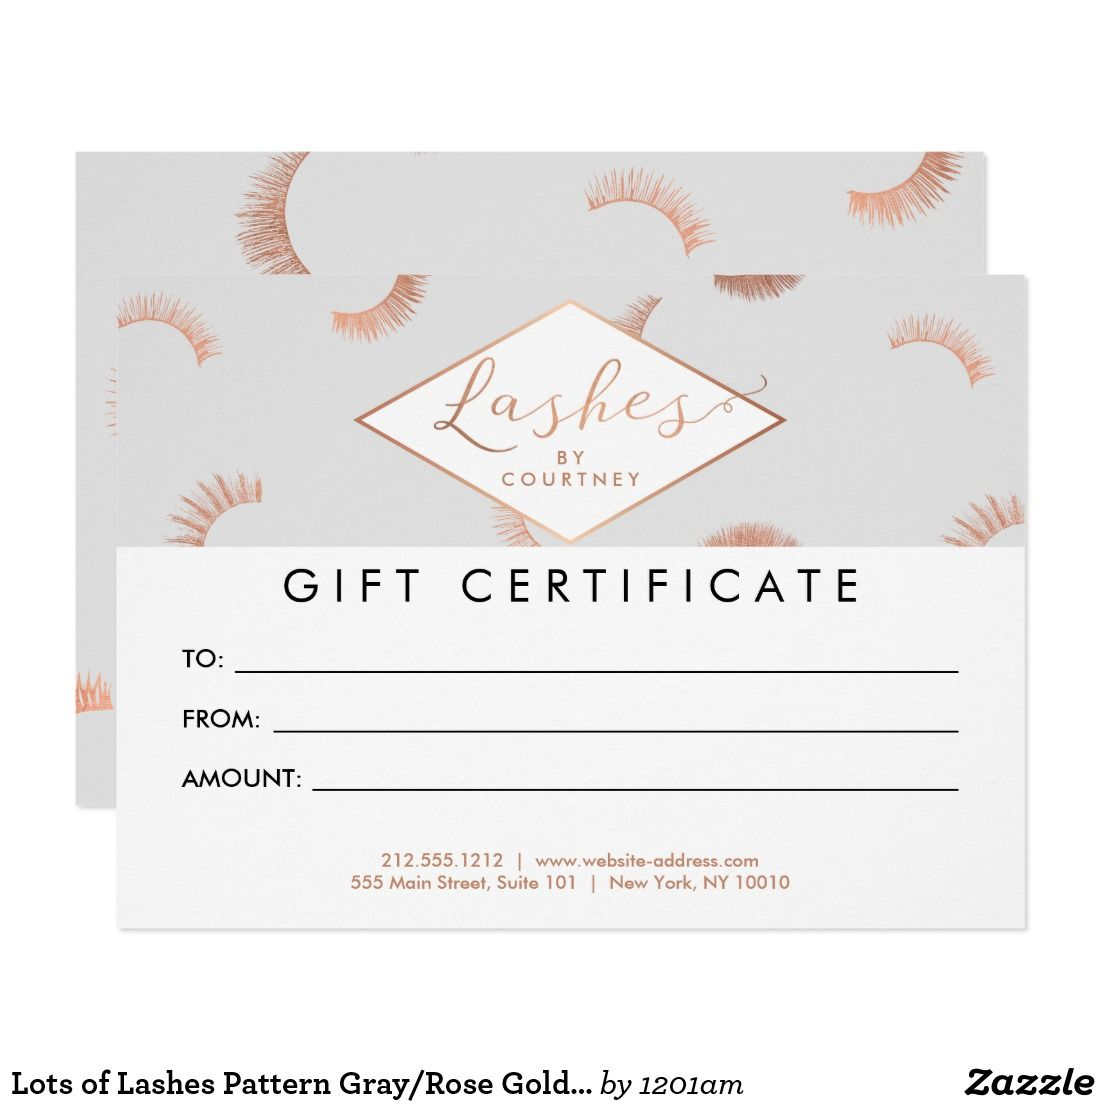 Lots of Lashes Pattern Gray/Rose Gold Gift Card Zazzle